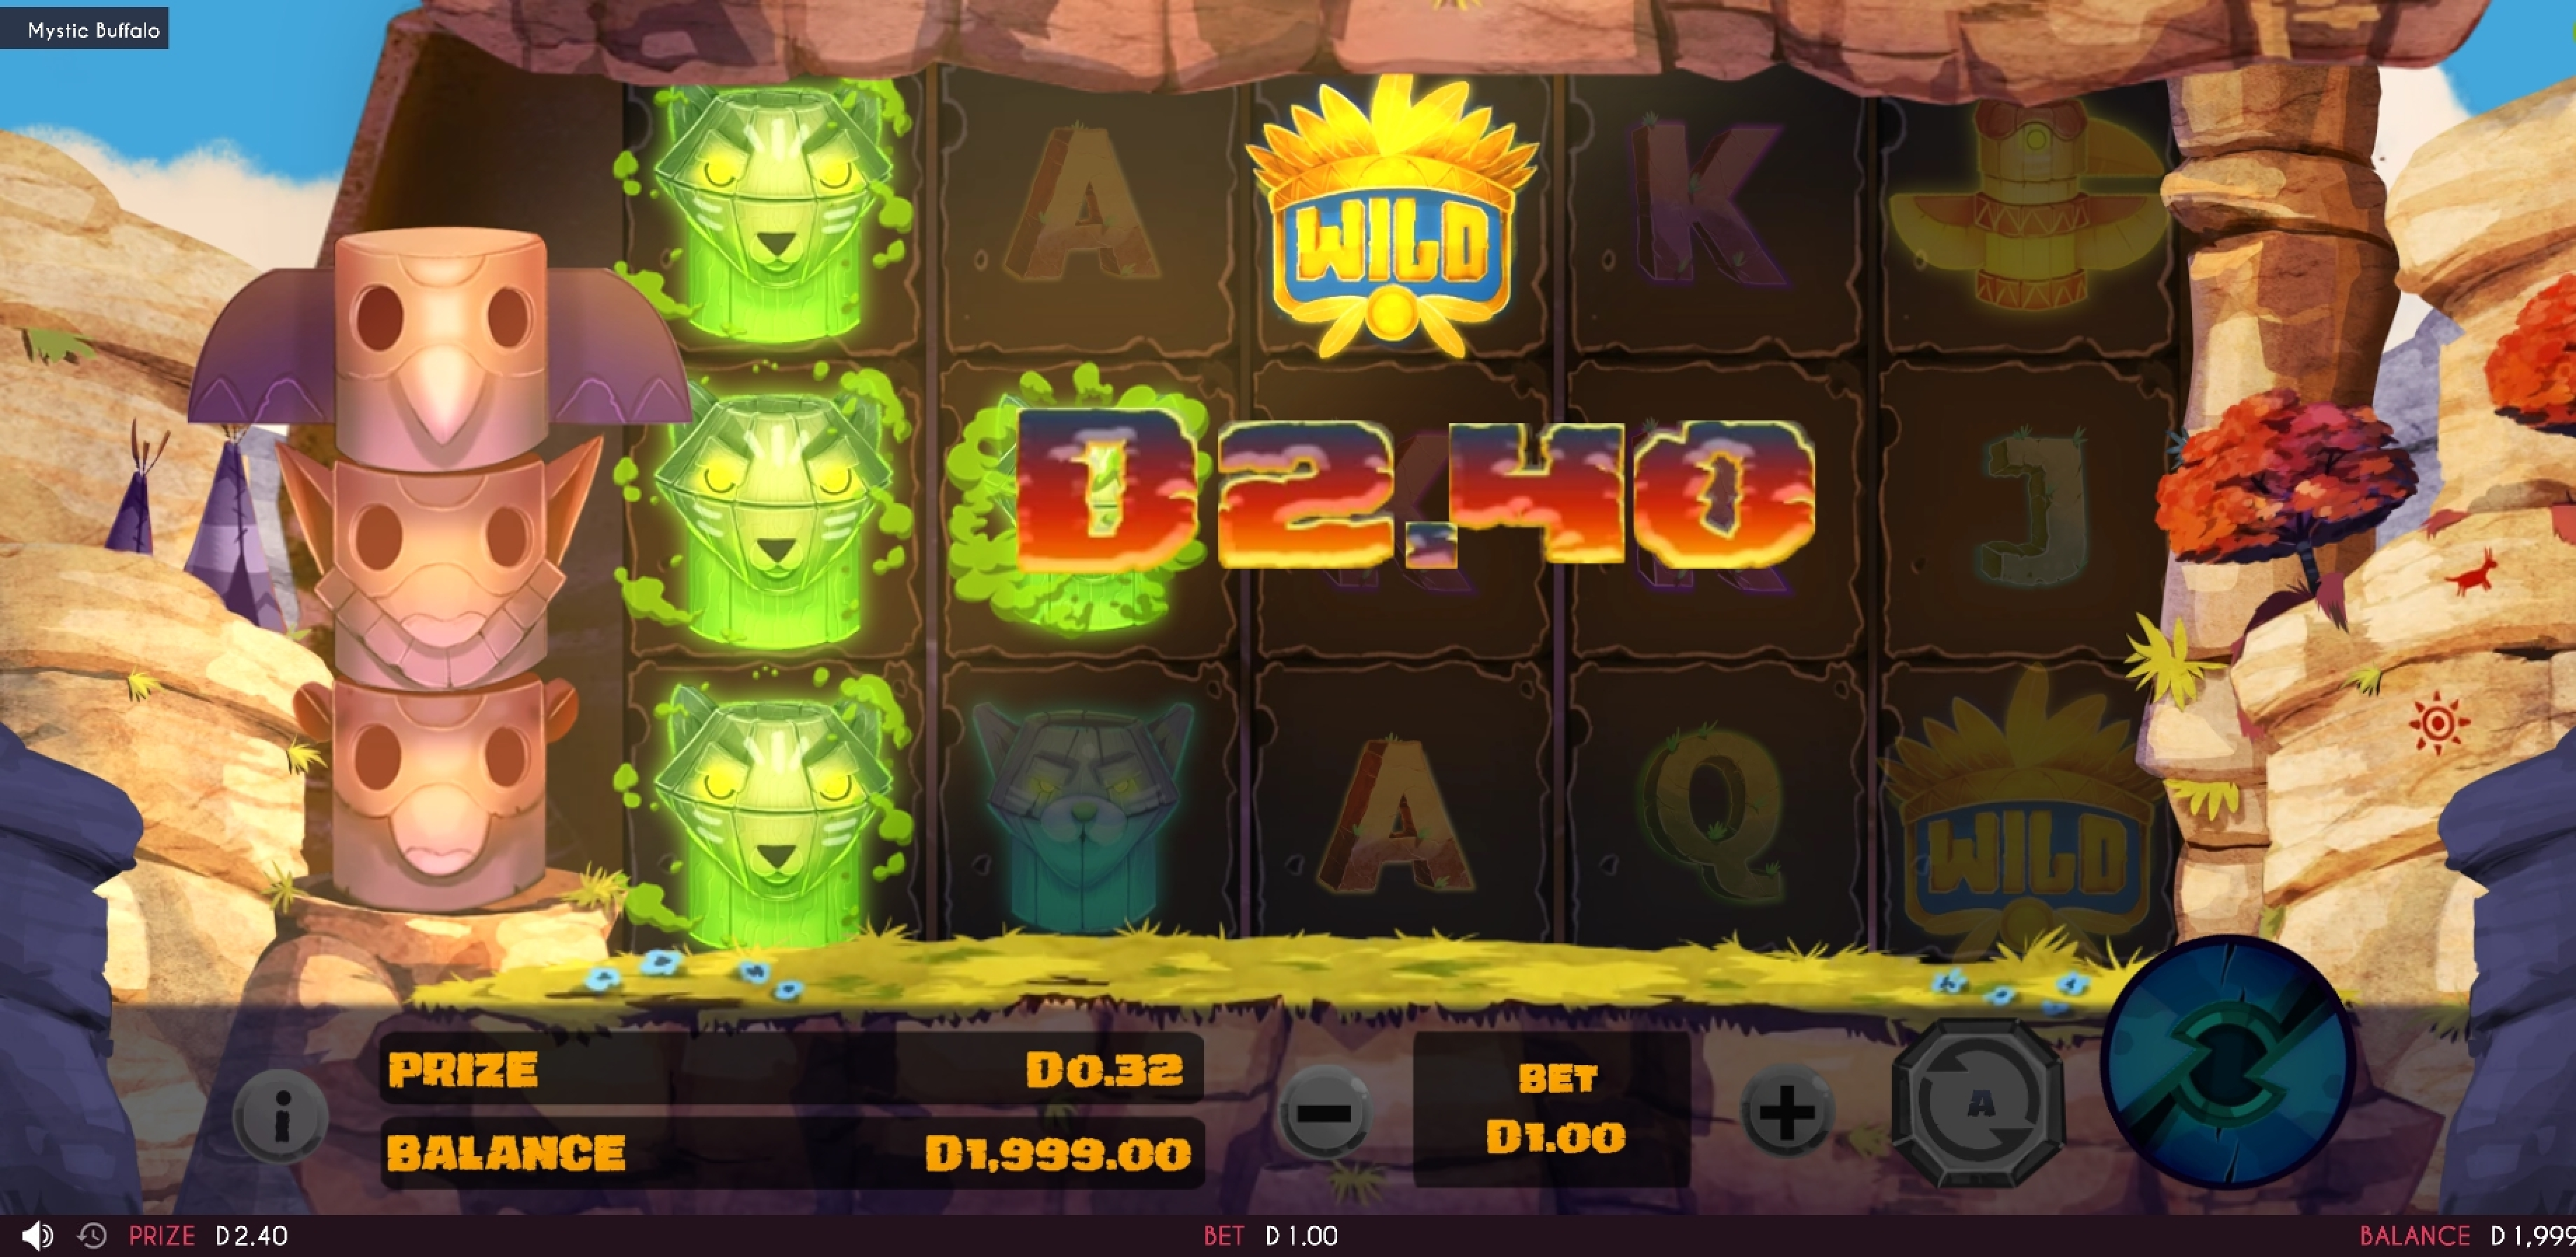 Win Money in Mystic Buffalo Free Slot Game by Triple Cherry